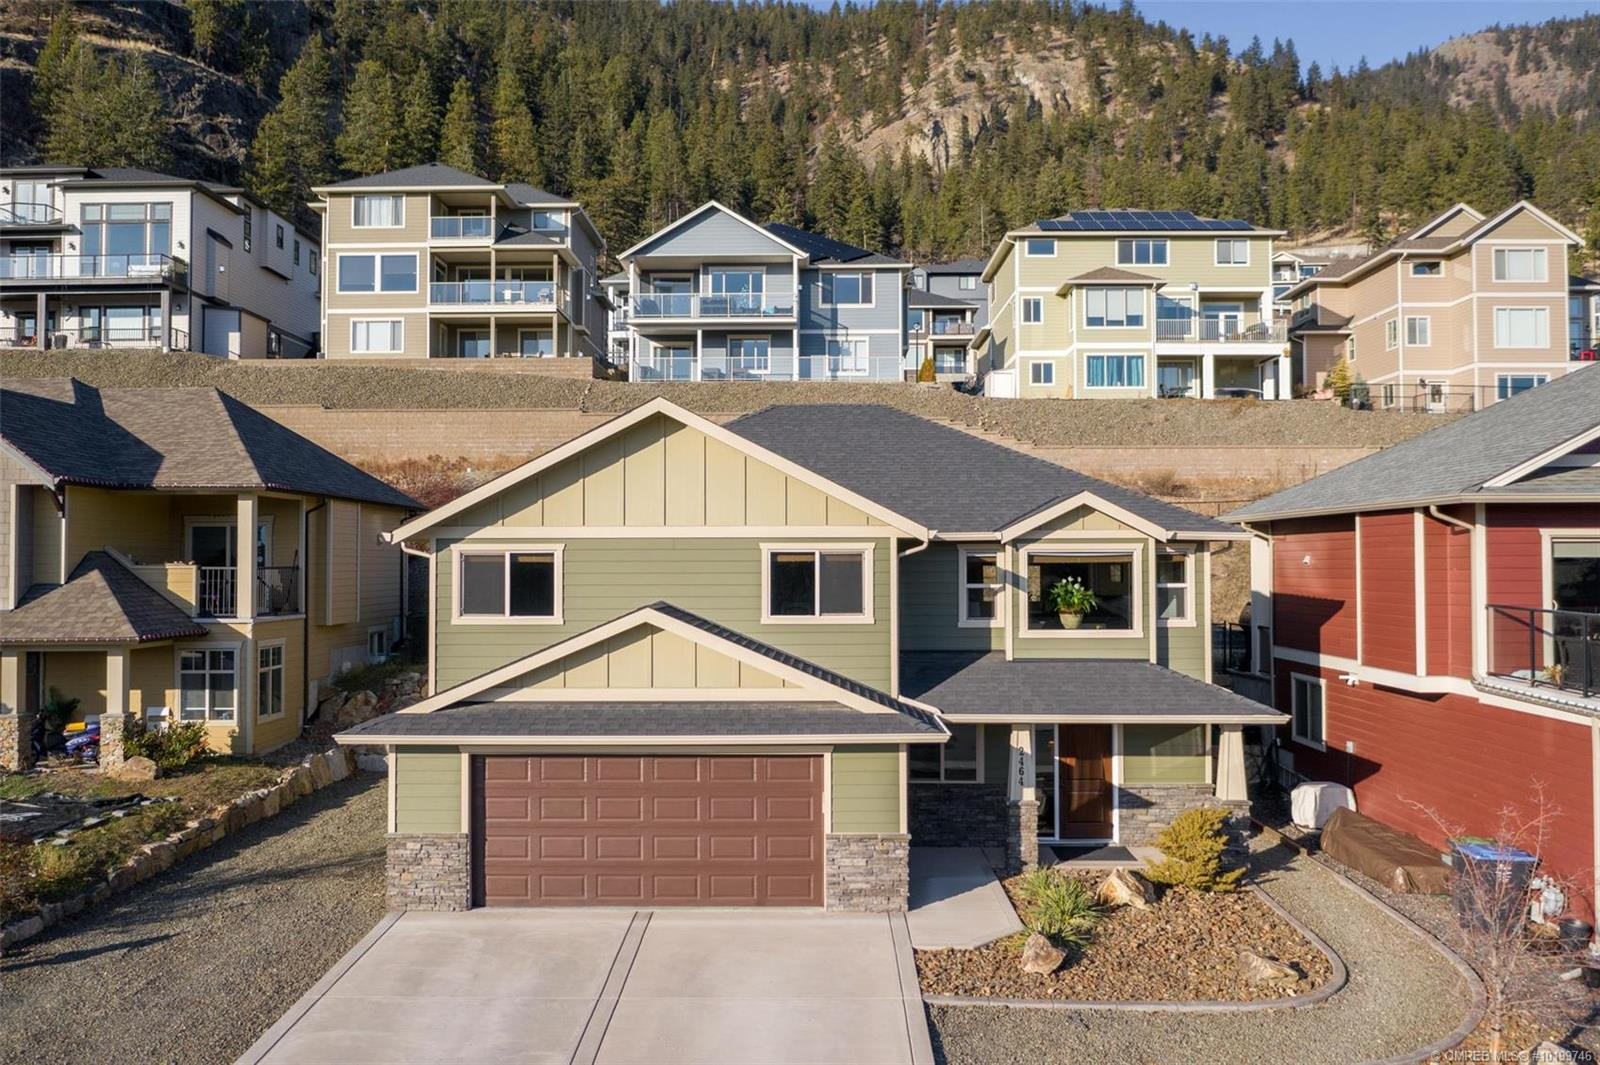 Removed: 2464 Ryser Place, West Kelowna, BC - Removed on 2020-03-04 04:33:15